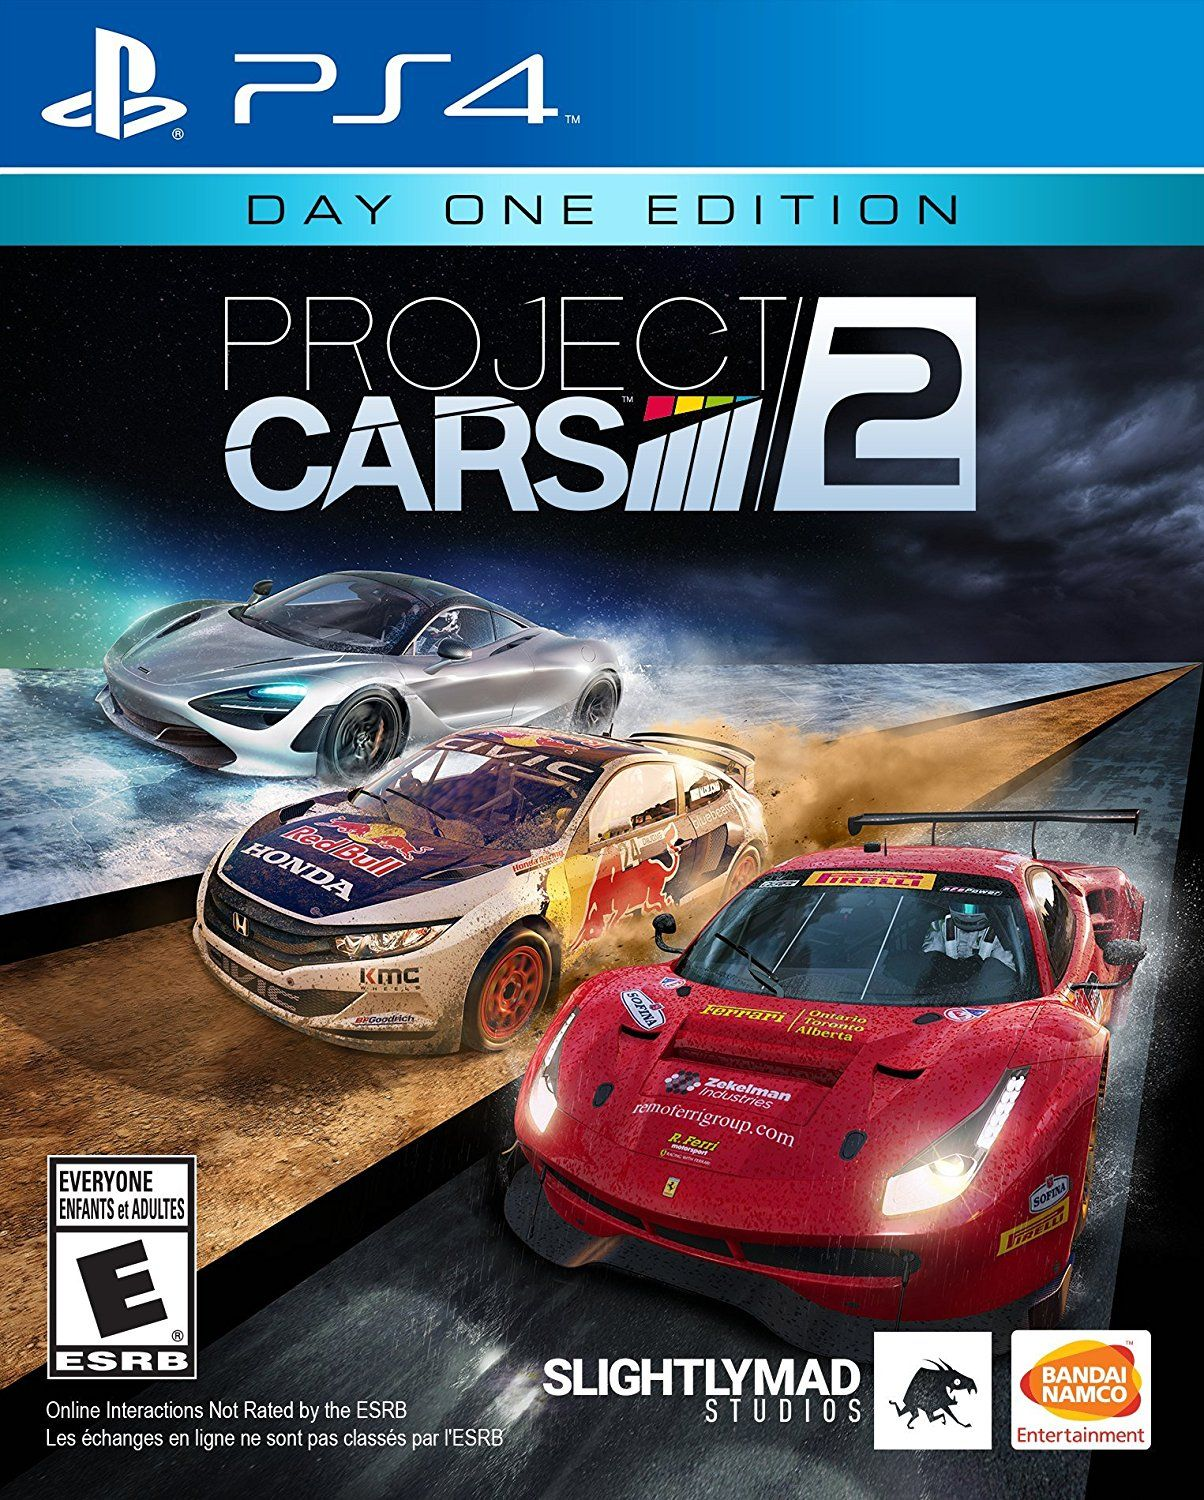 Project Cars 2 Game Cover PS4 Day One Edition Xbox one